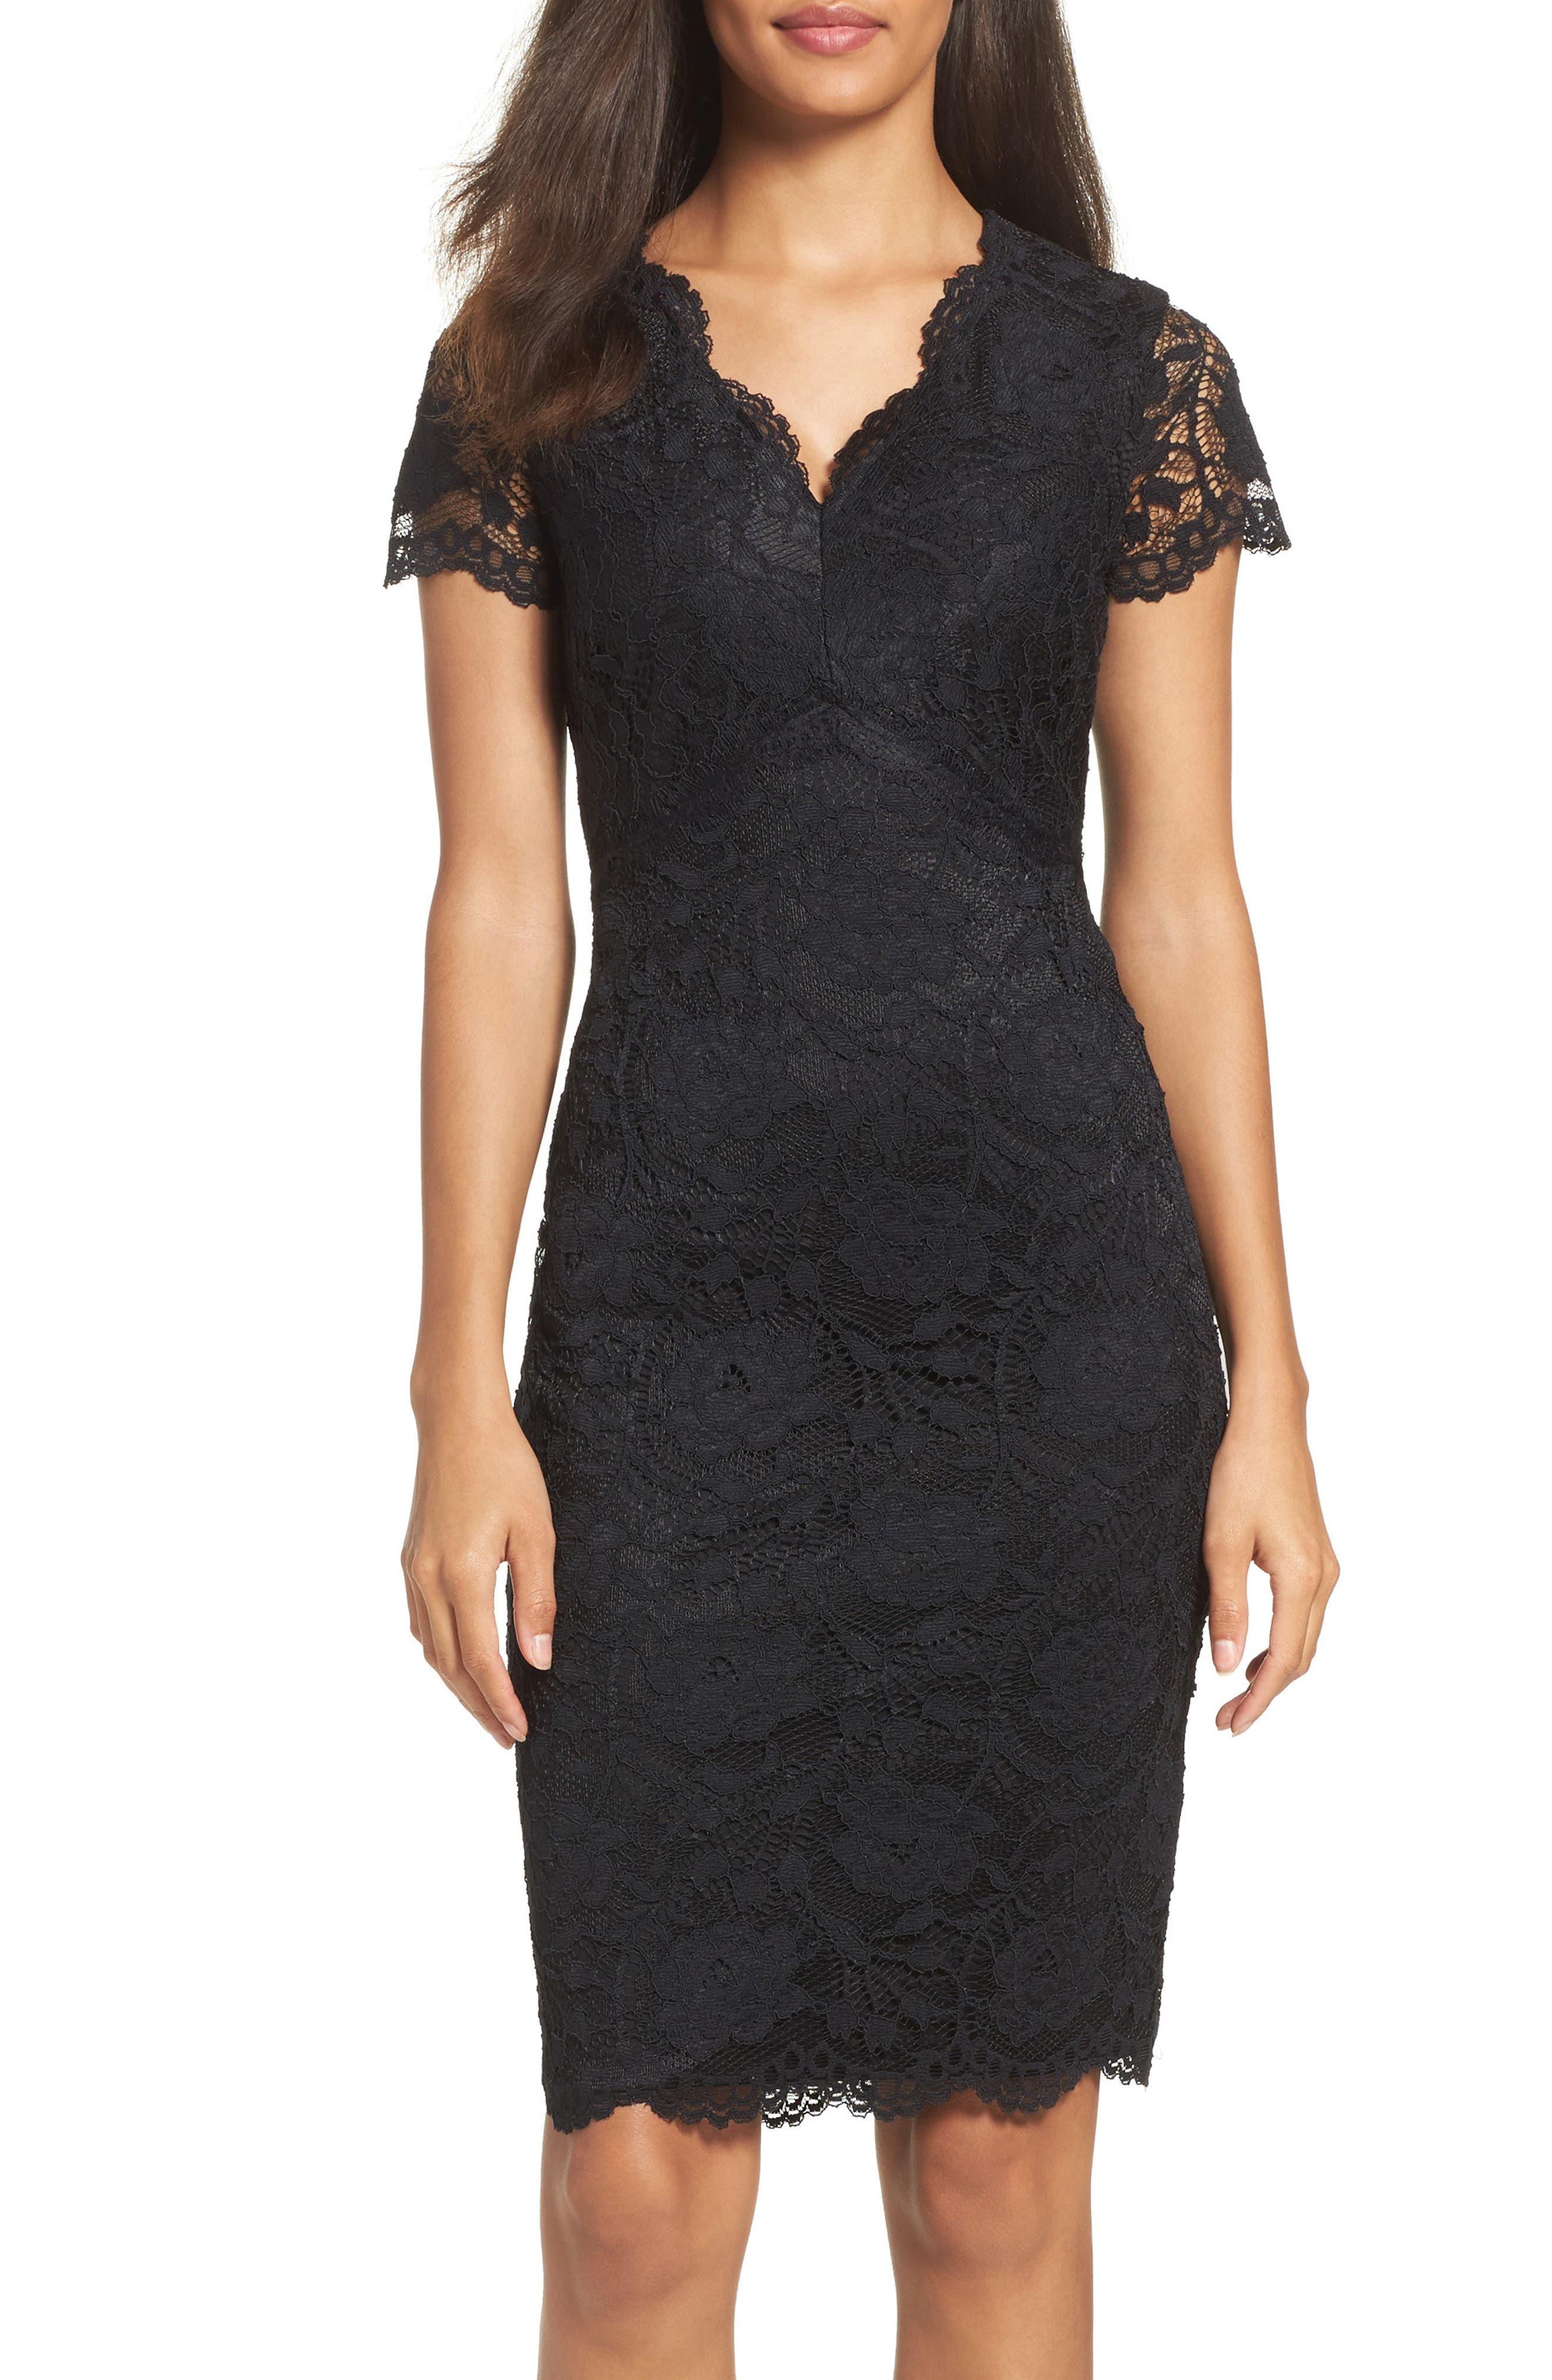 Alternate Image 1 Selected - Ellen Tracy Lace Sheath Dress (Regular & Petite)